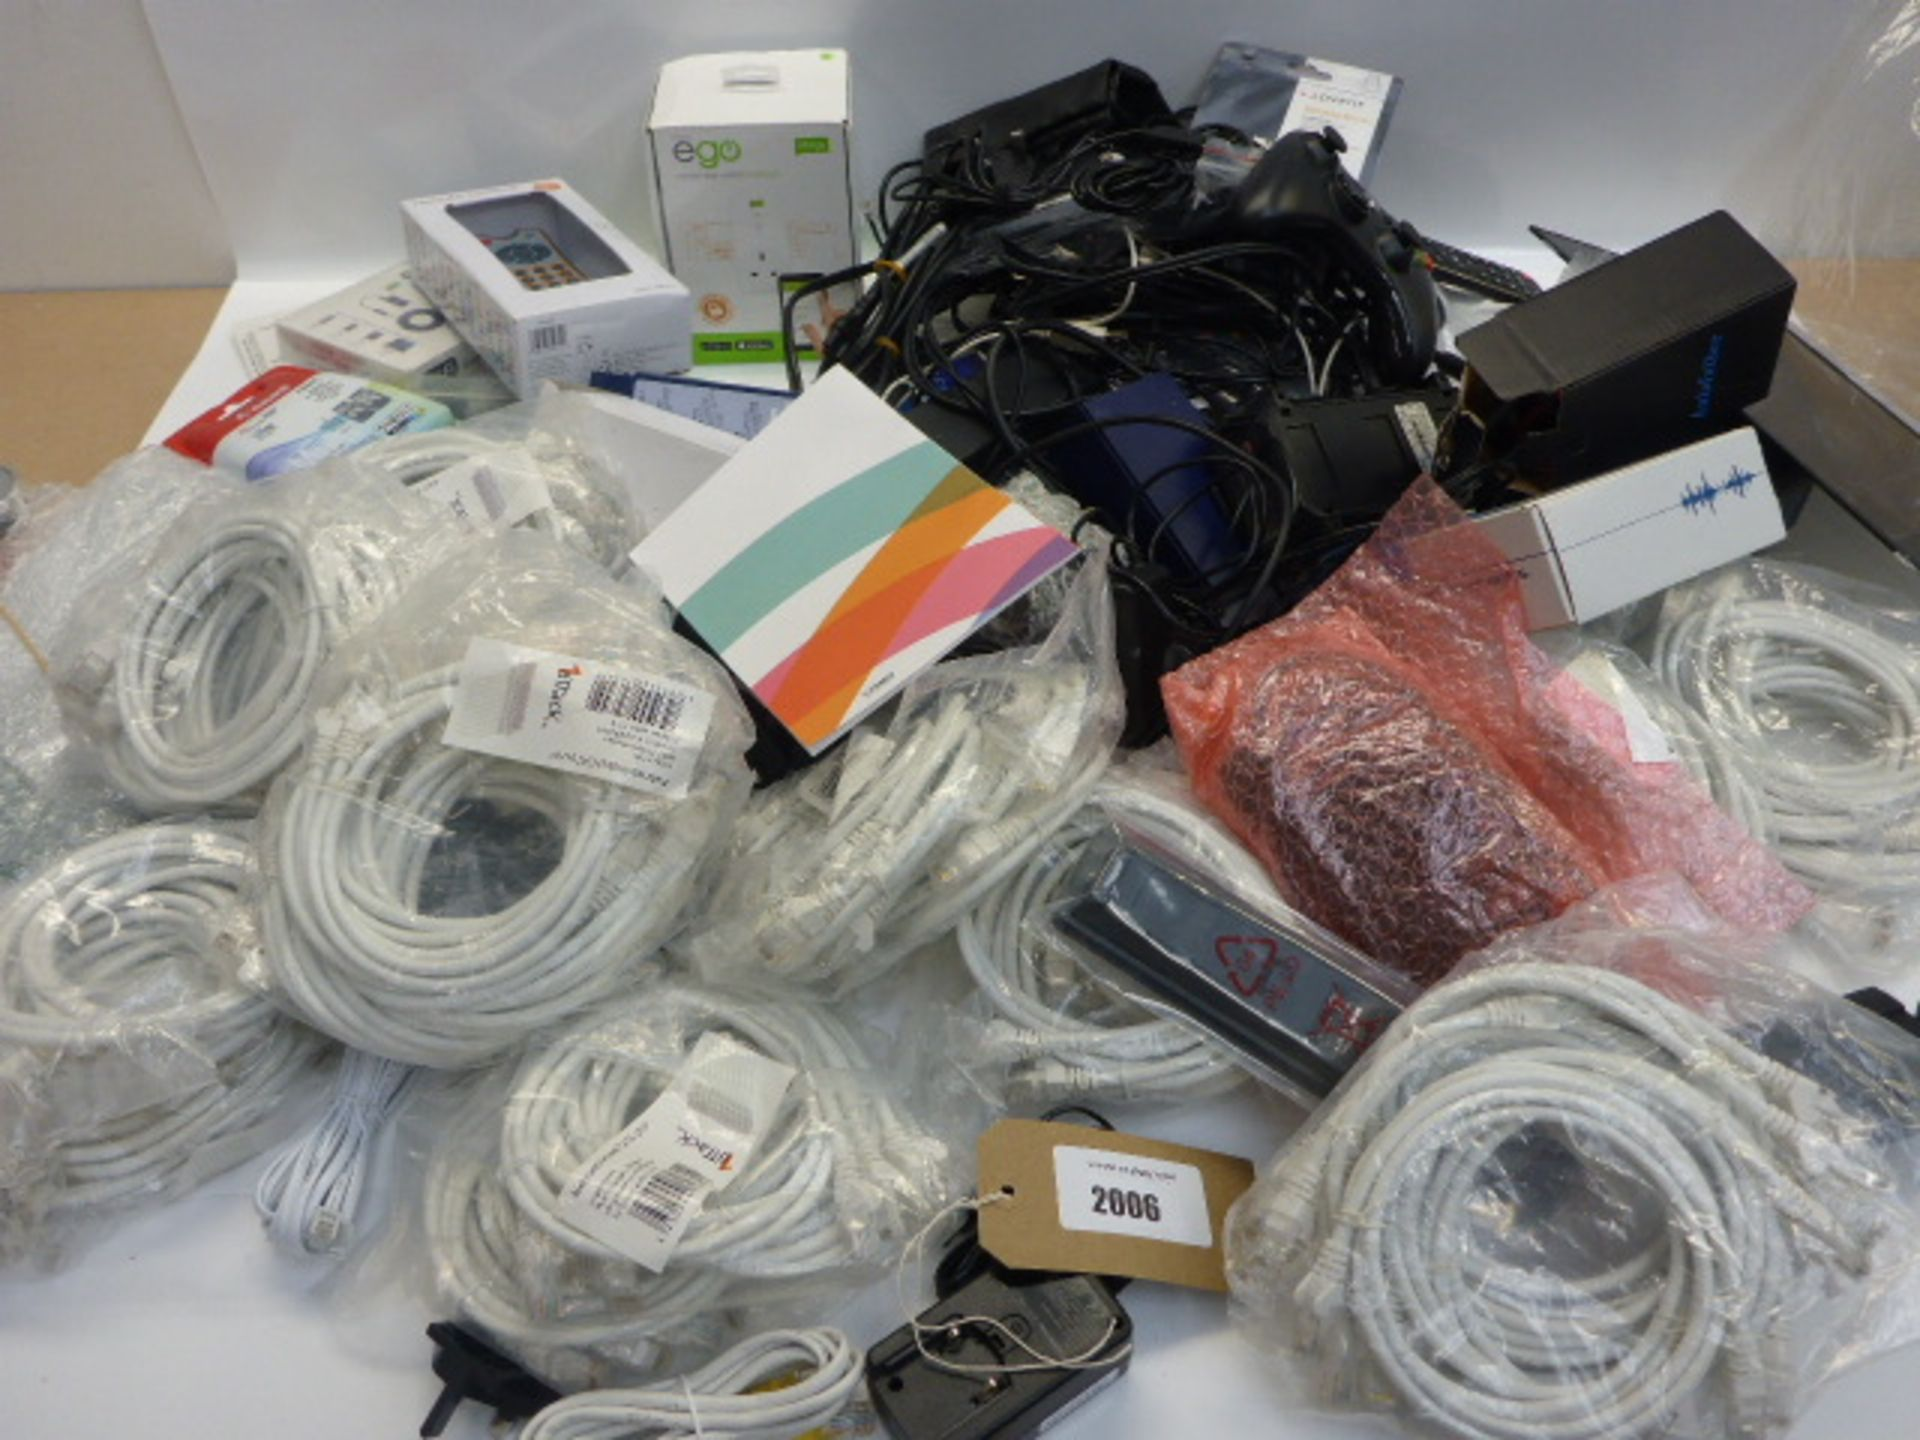 Lot 2006 - Bag containing quantity of electrical accessories; leads, cables, PC mice, adapters, remotes etc